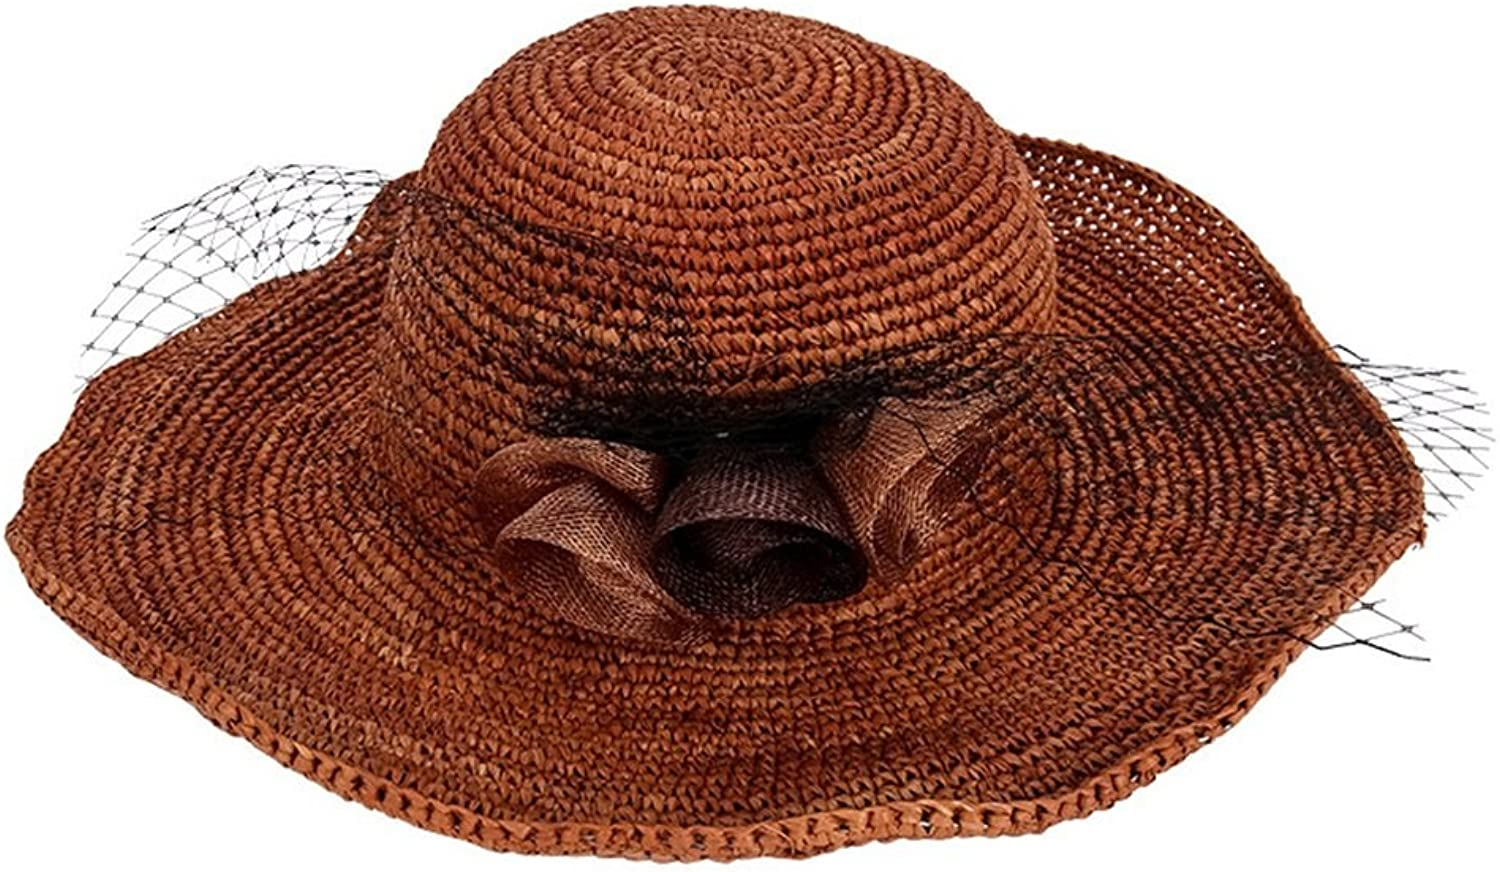 897eca6094d2b6 Flower Straw Hat Lady in Spring and Summer Sun Predection Hat Female (Size  ...